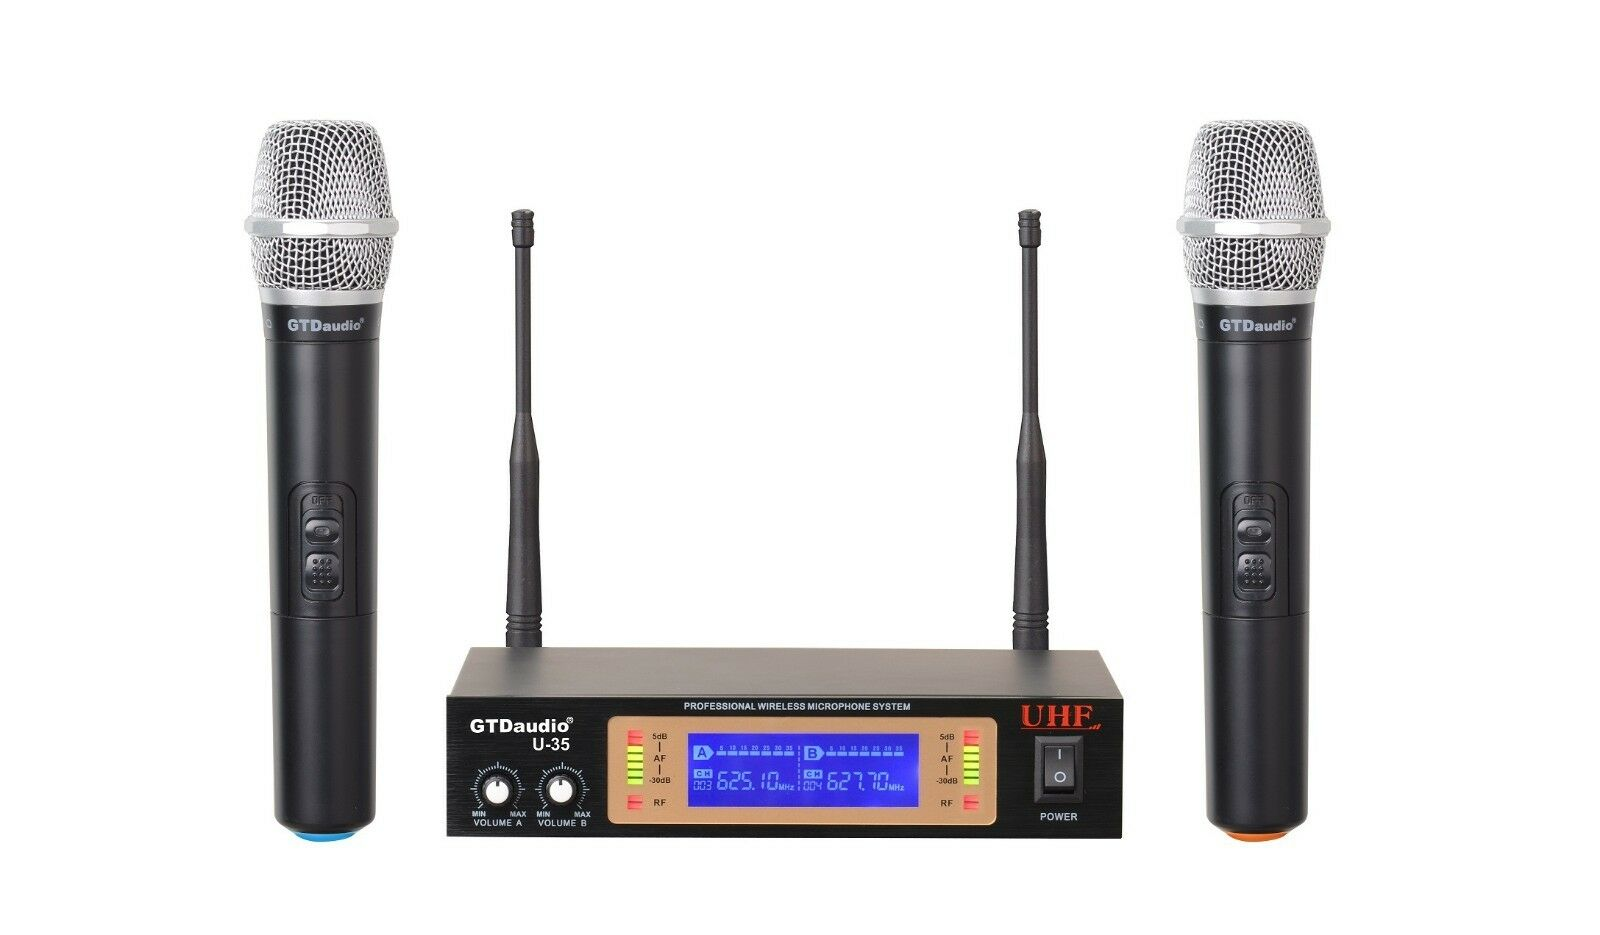 GTD Audio U-35H UHF Wireless Microphone System Karaoke mic w